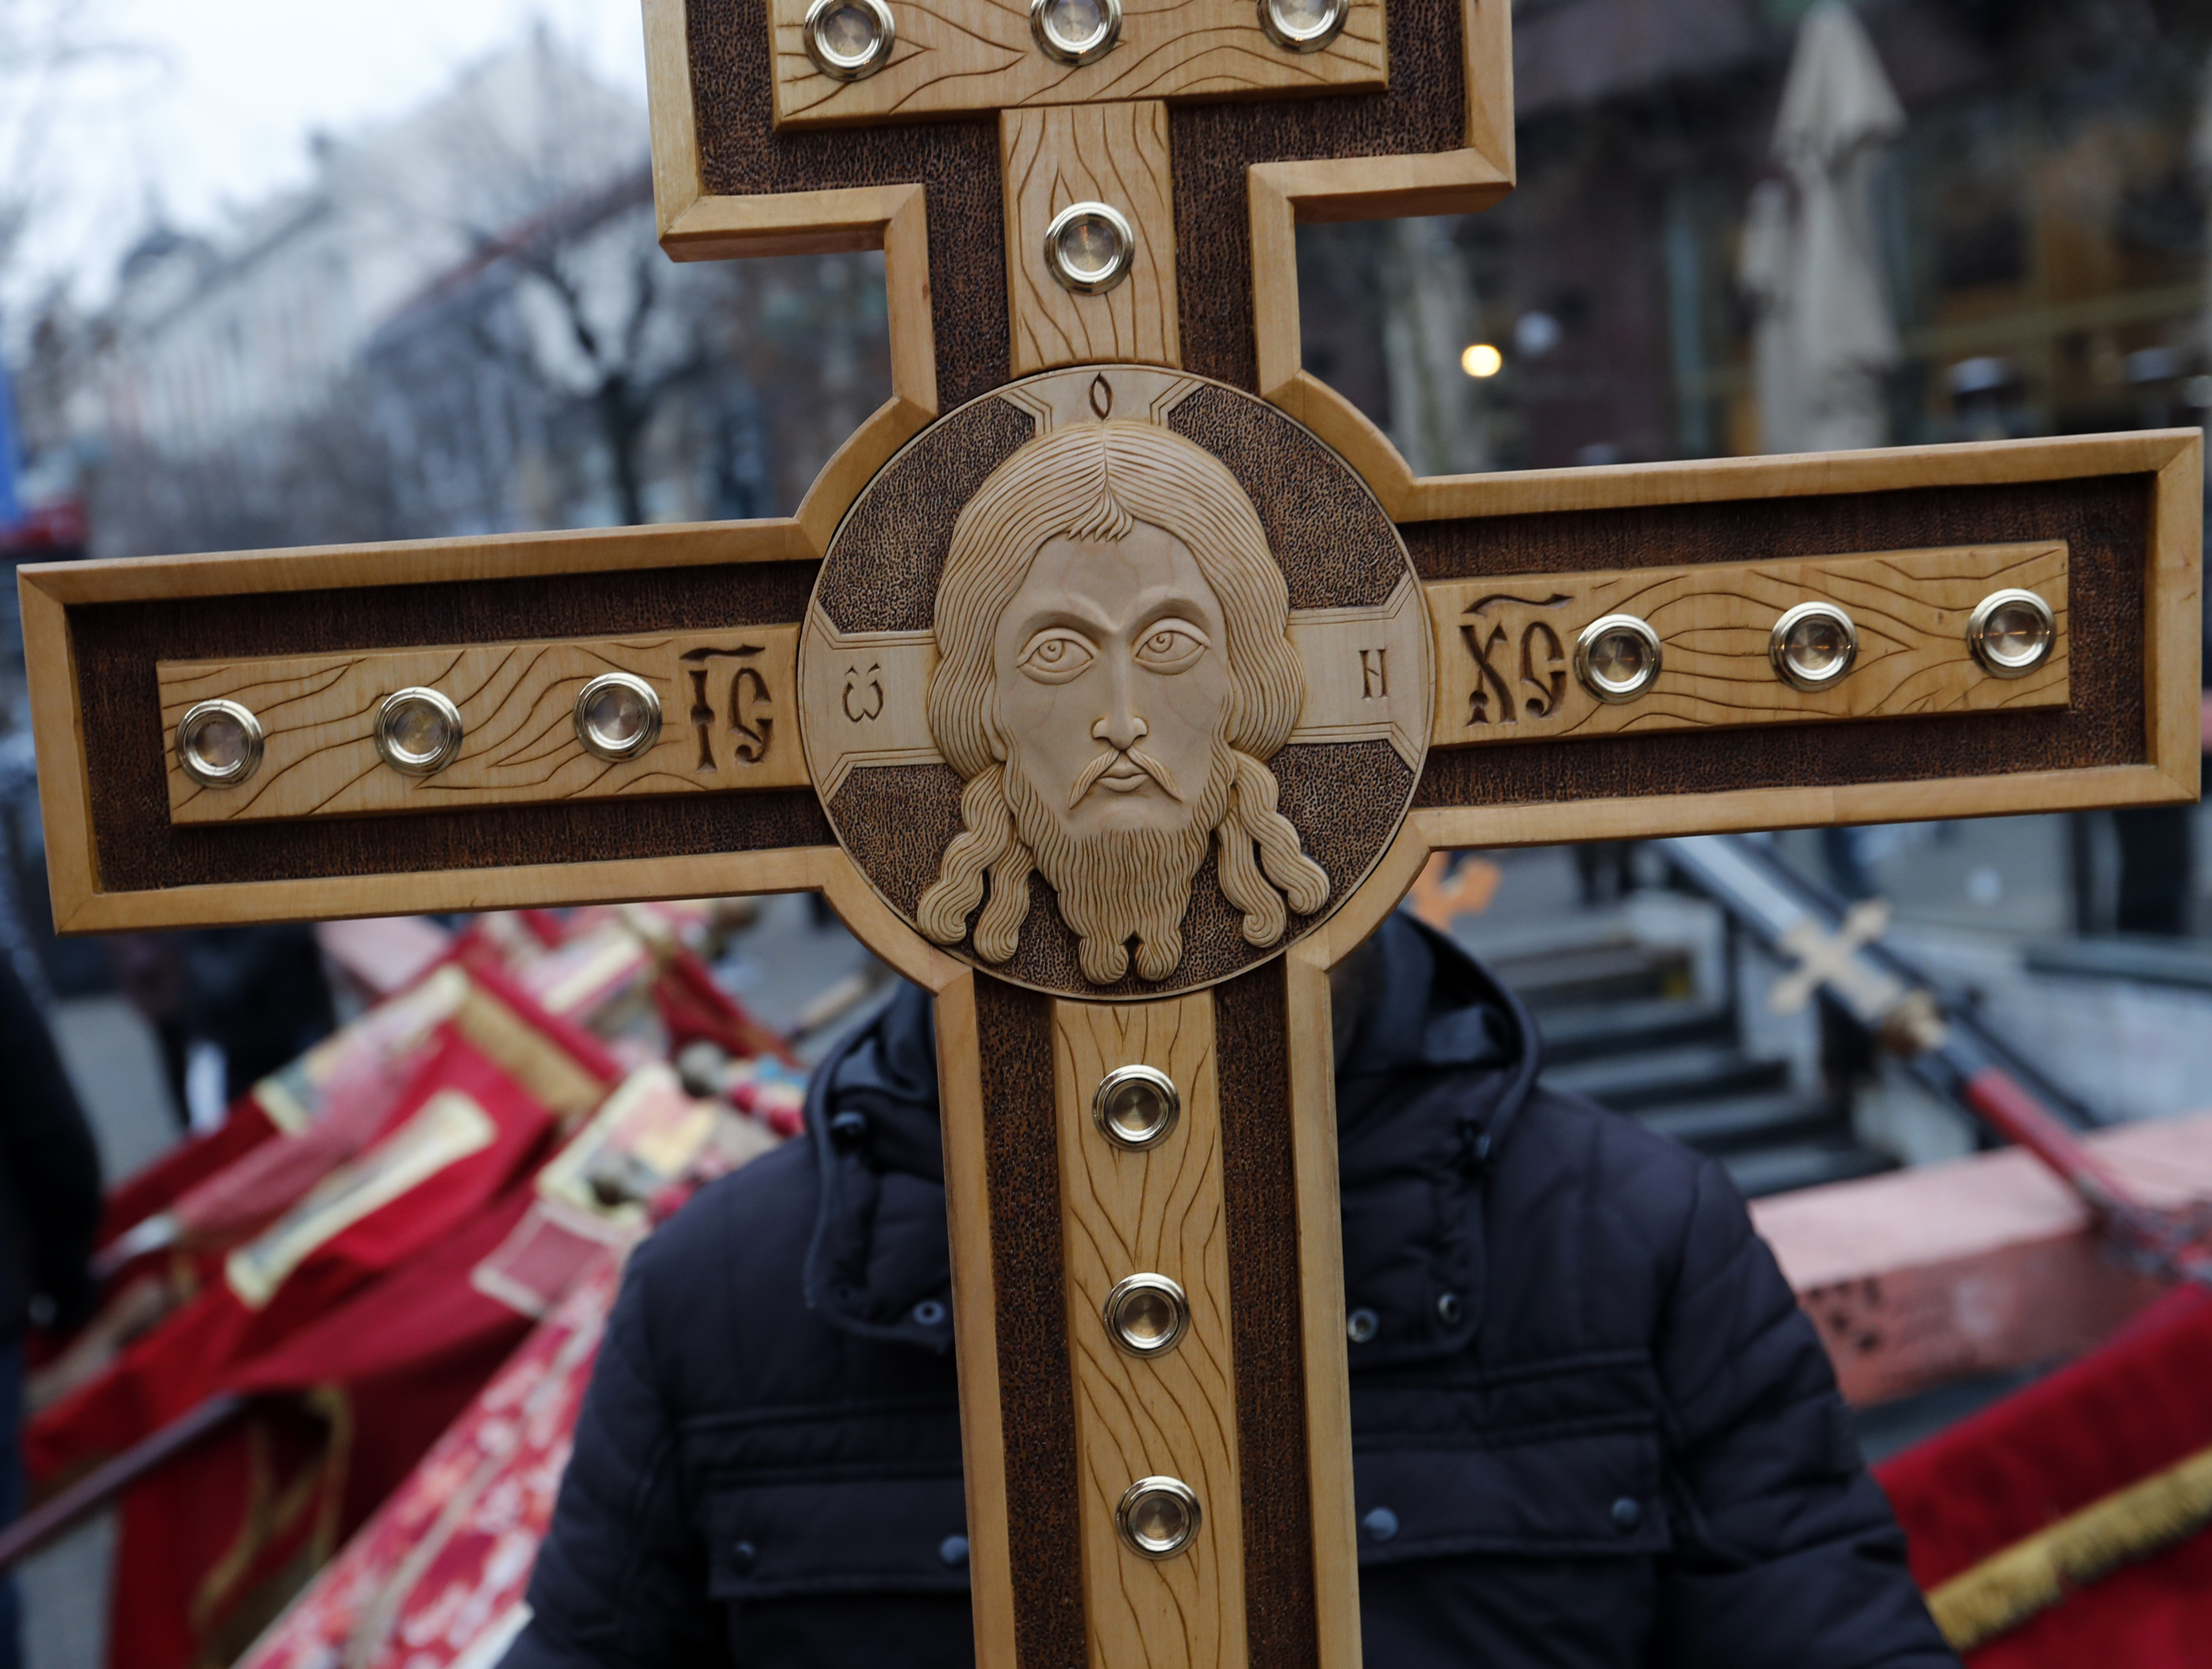 Serbian church protests suffering of Serbs in the Balkans